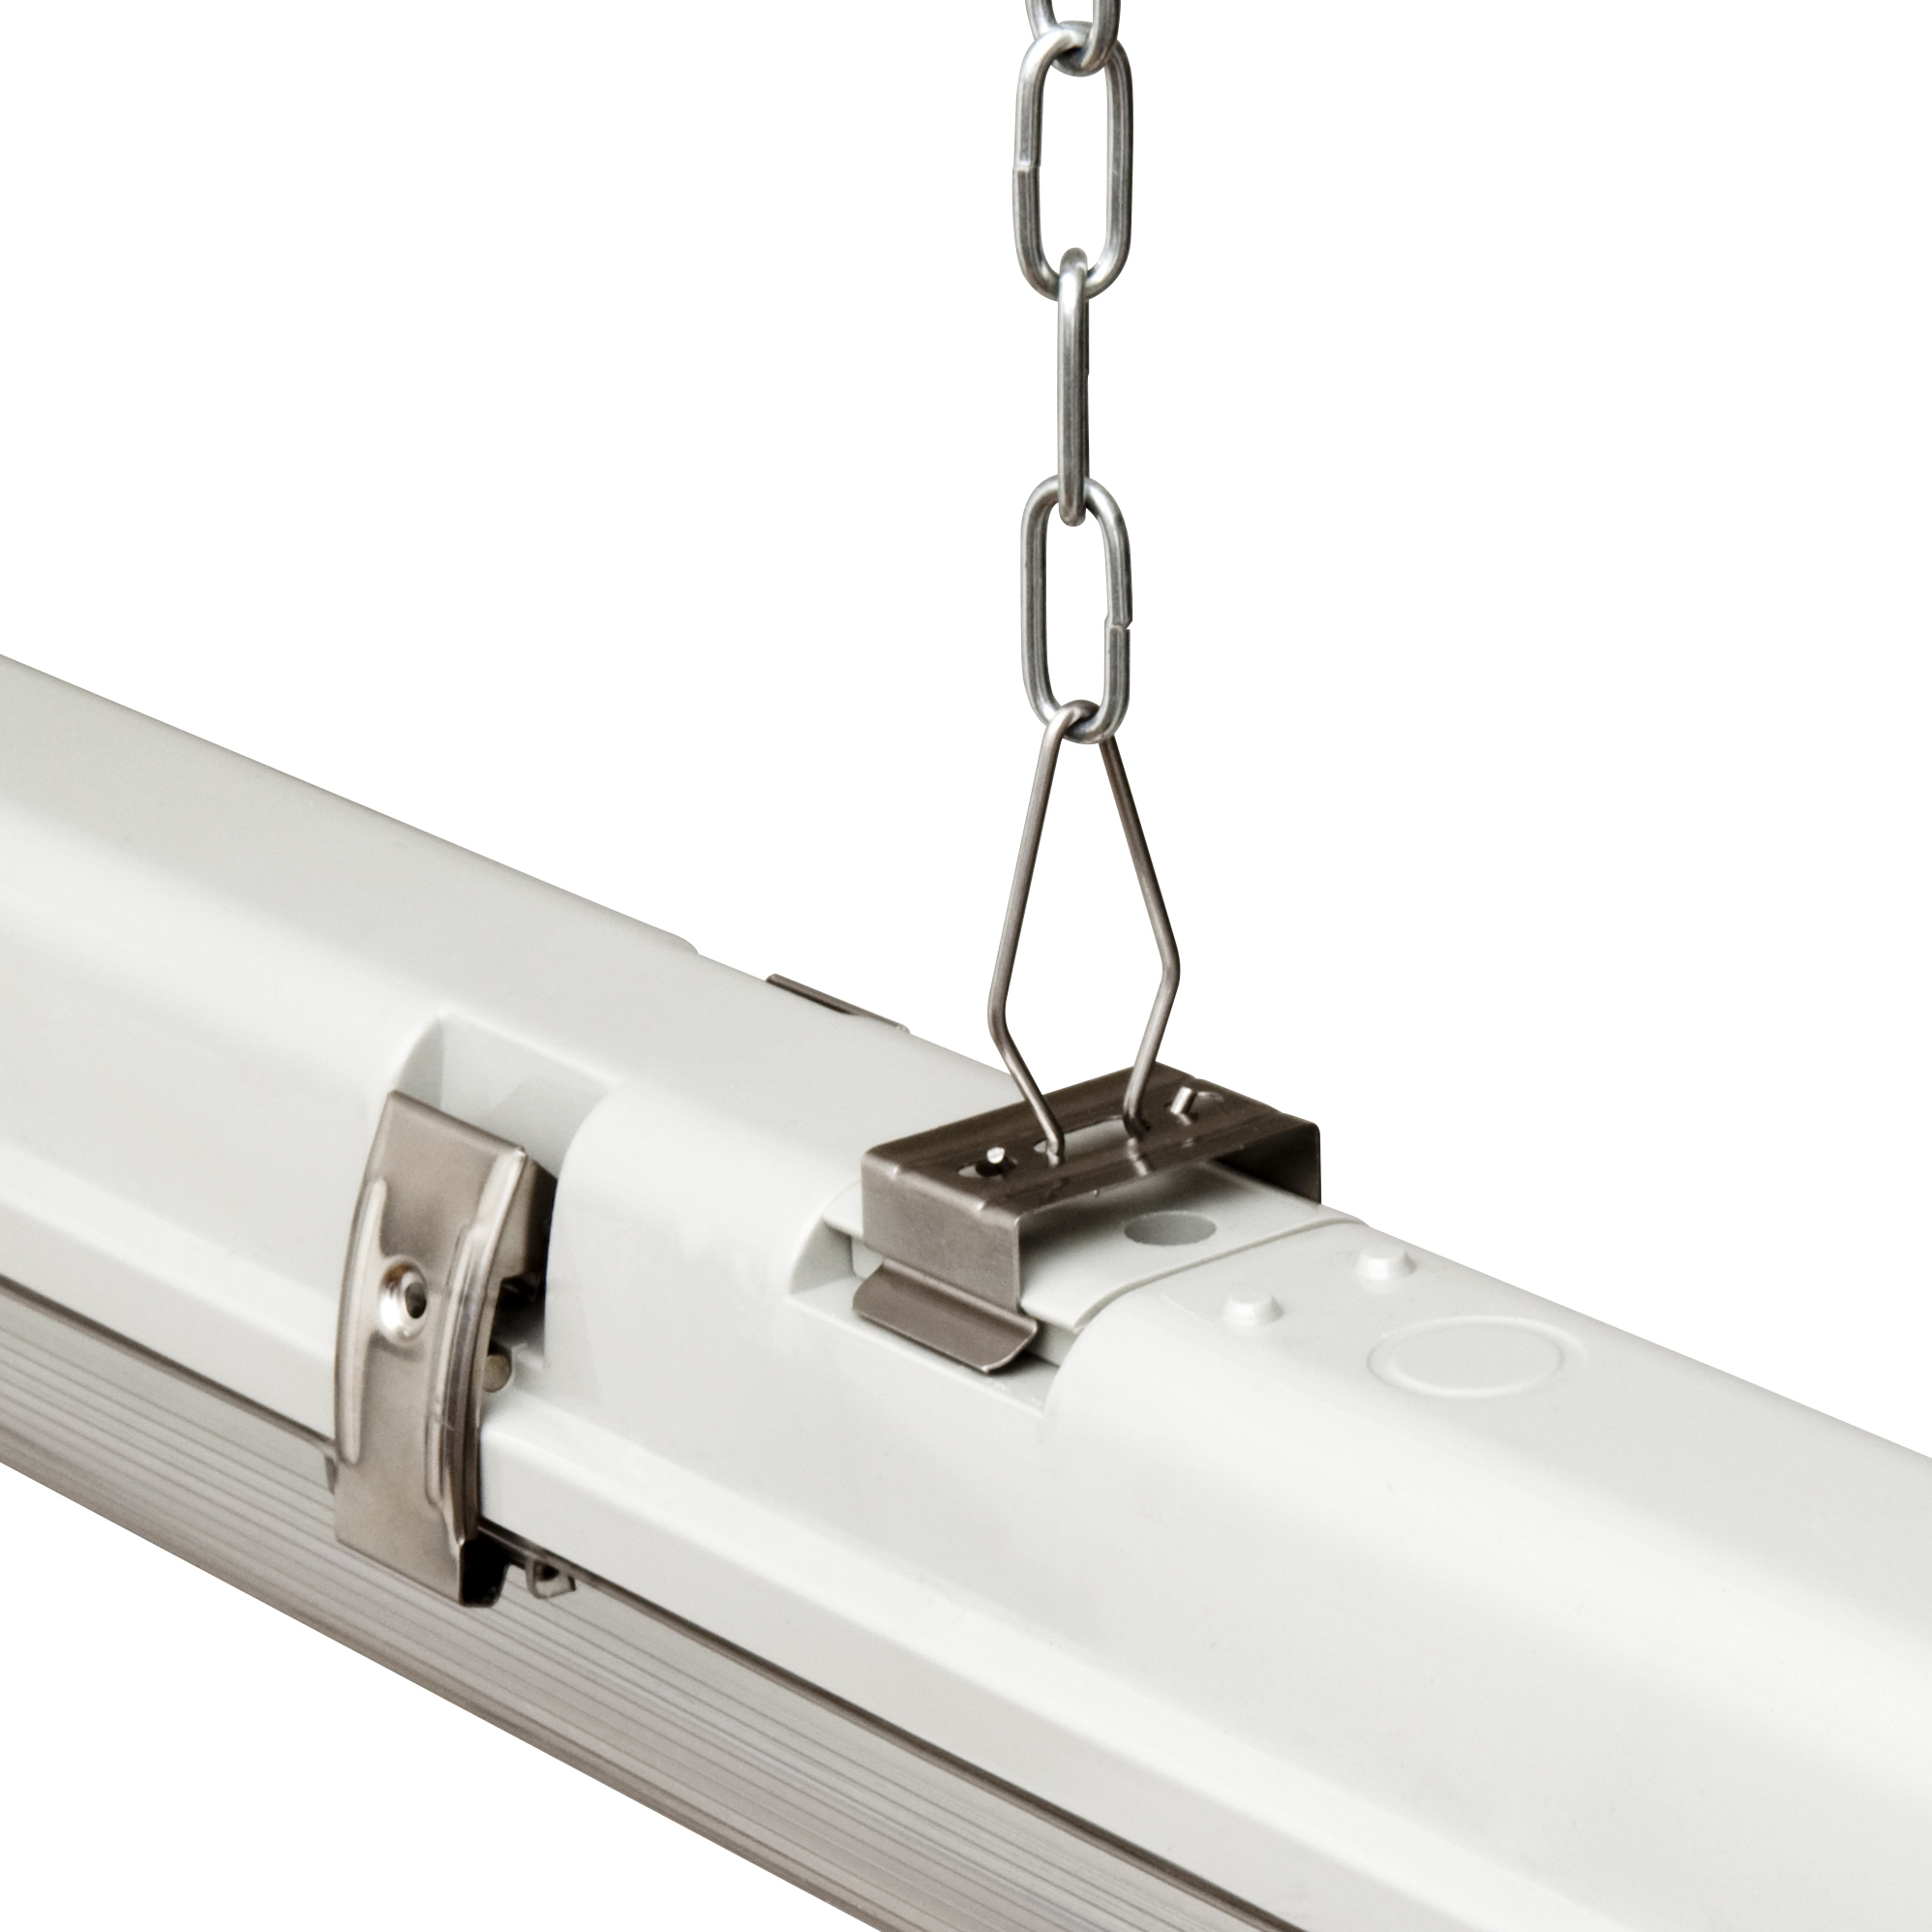 Ikea luminaire suspension led for Suspension luminaire ronde